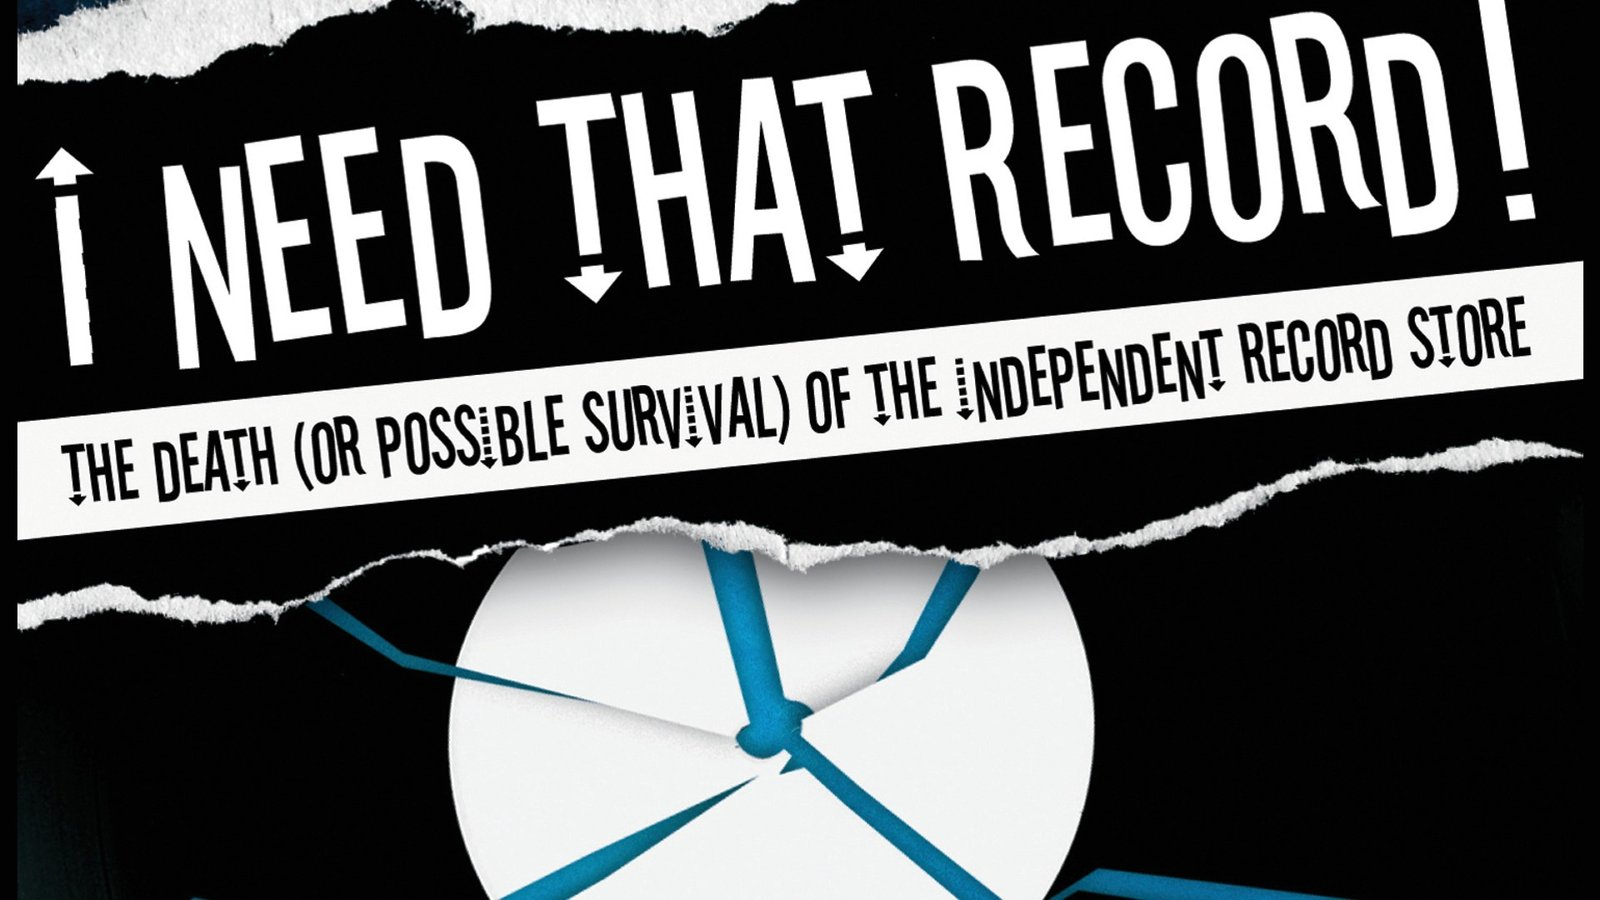 I Need That Record! - The Death (Or Possible Survival) Of The Independent Record Store